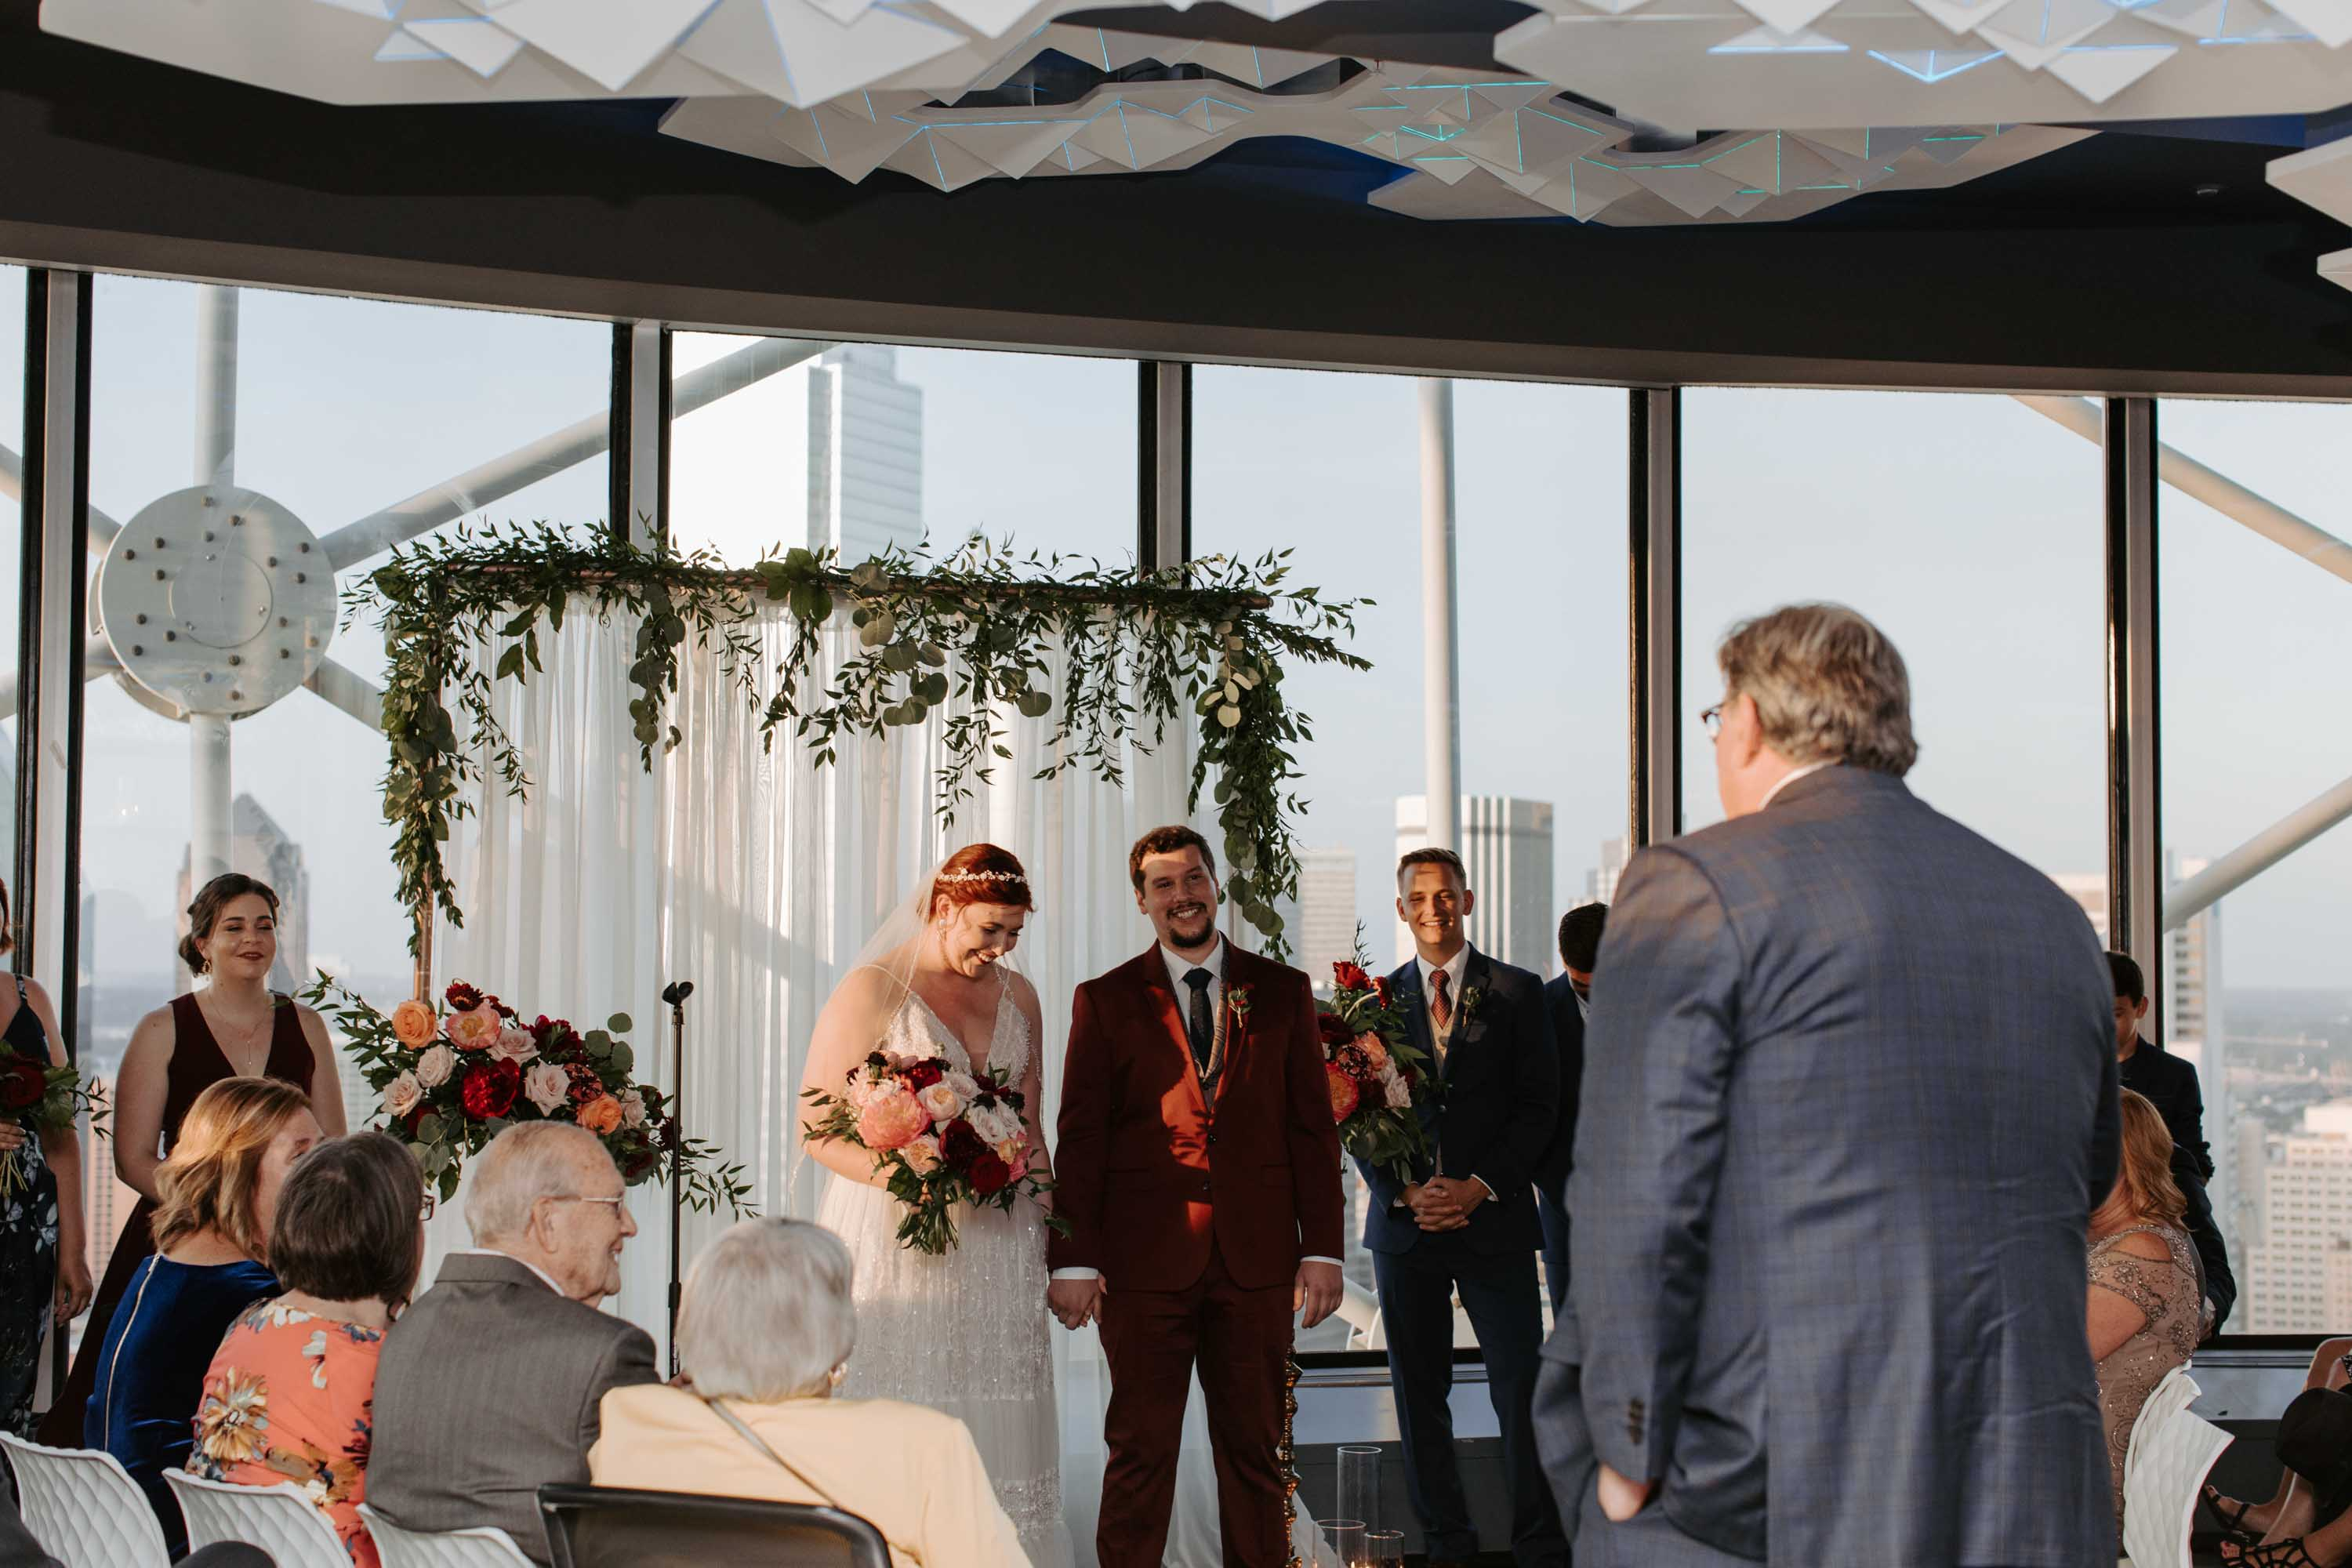 Romantic wedding ceremony in Dallas Texas